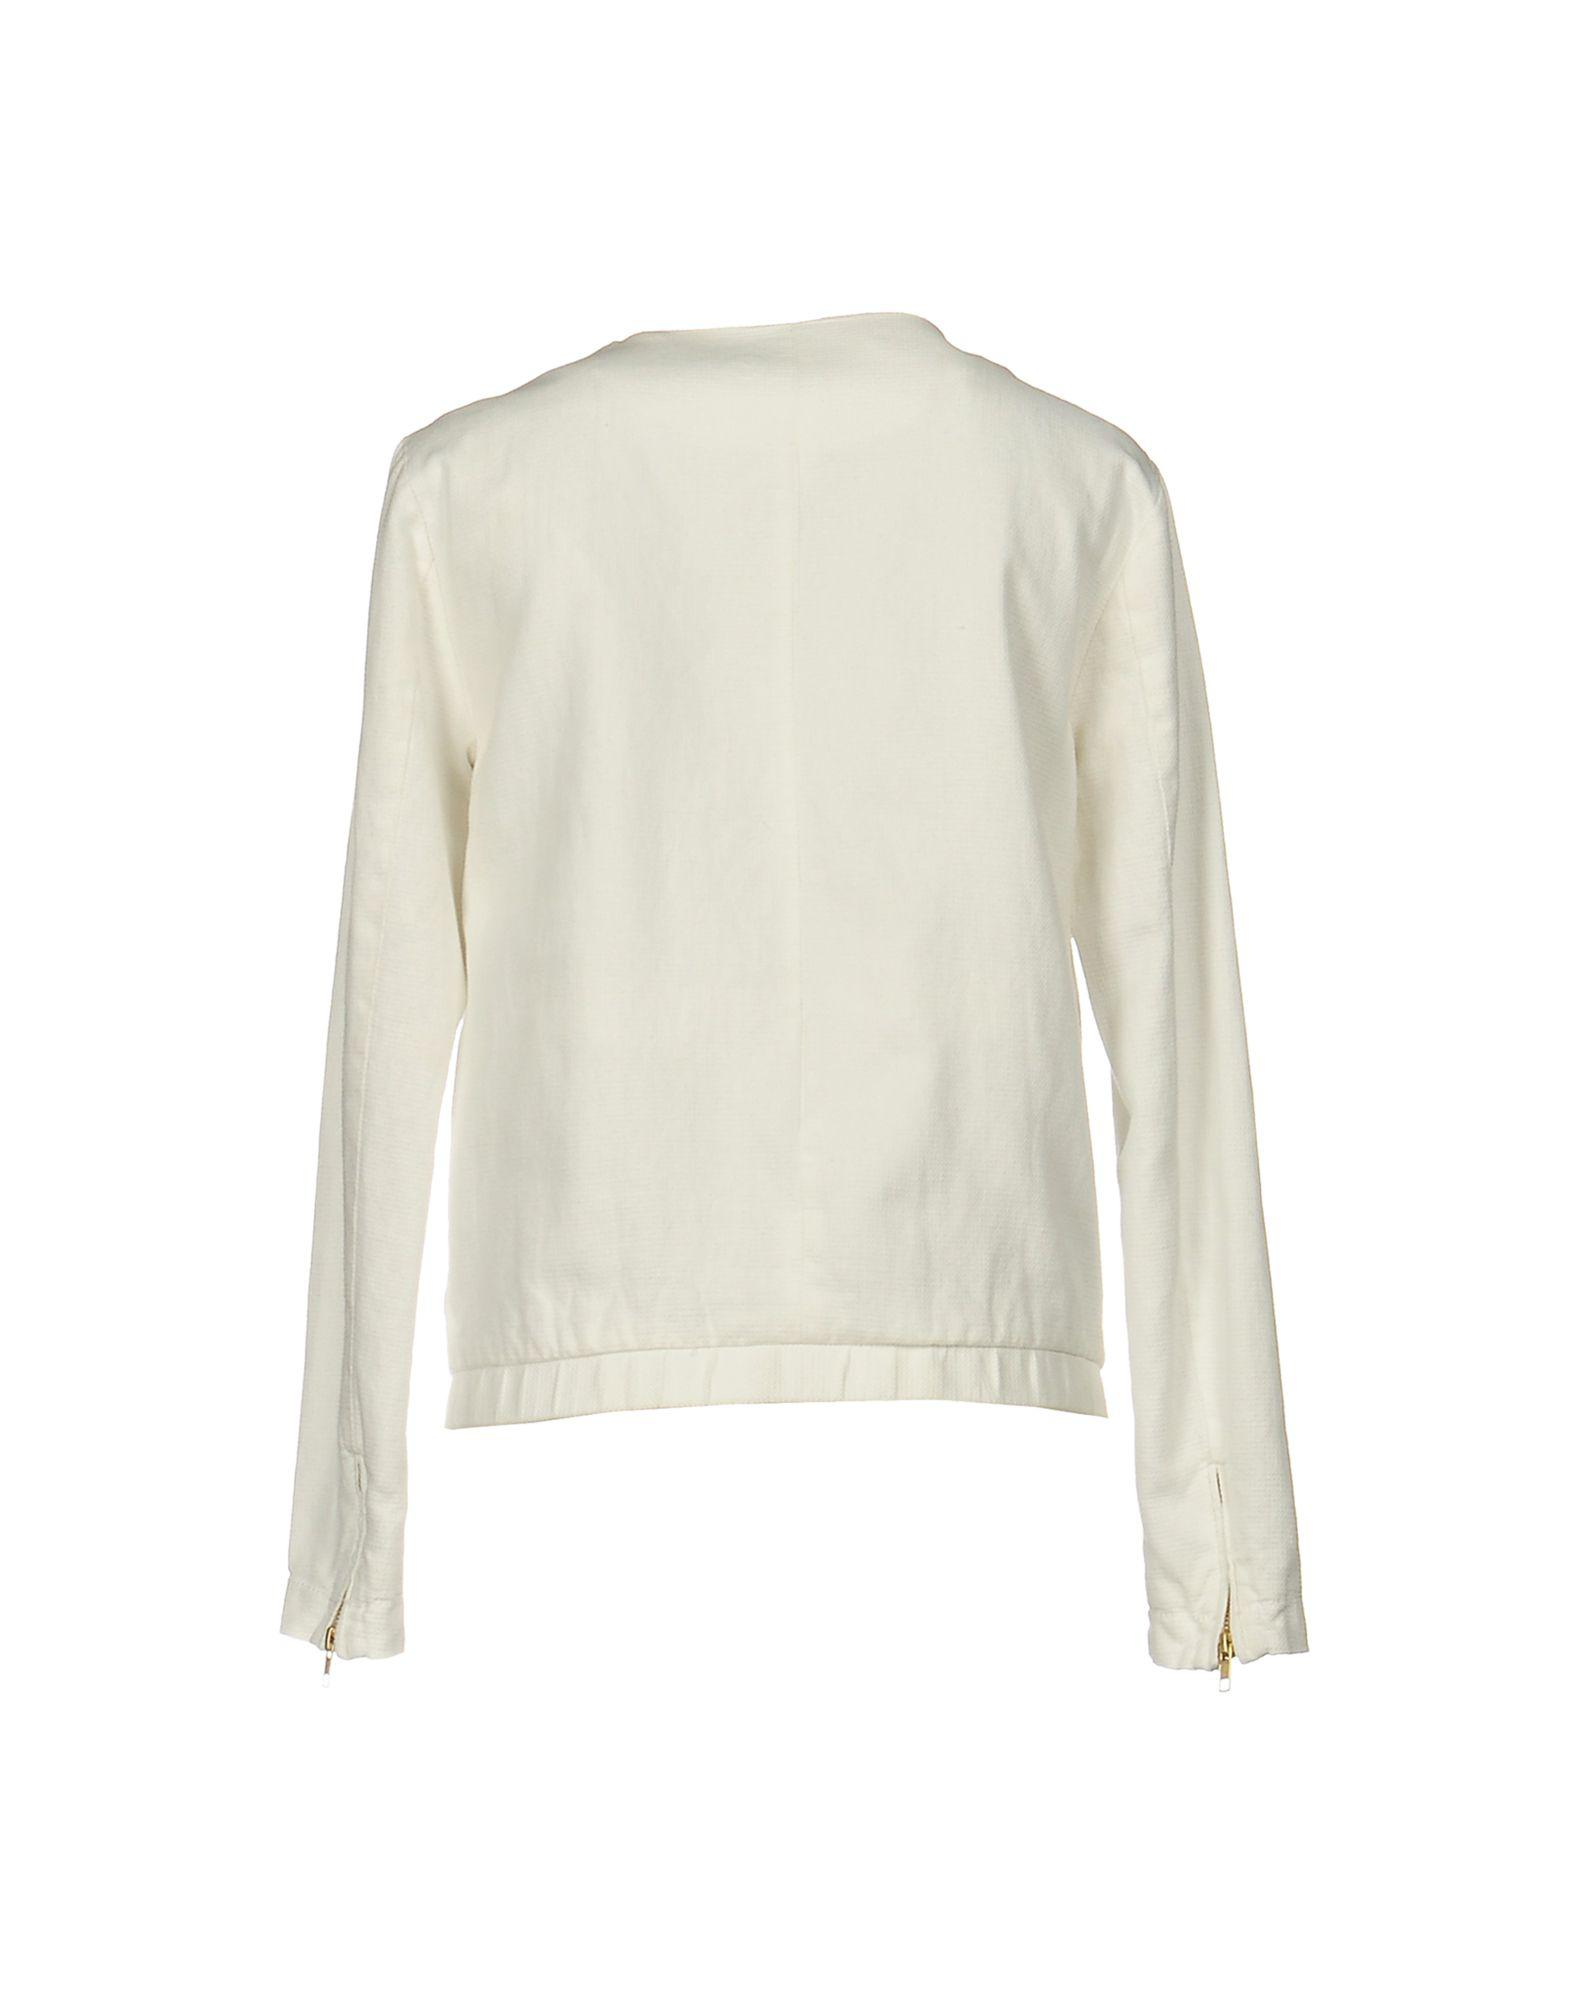 Pepe Jeans Cotton Jacket in White